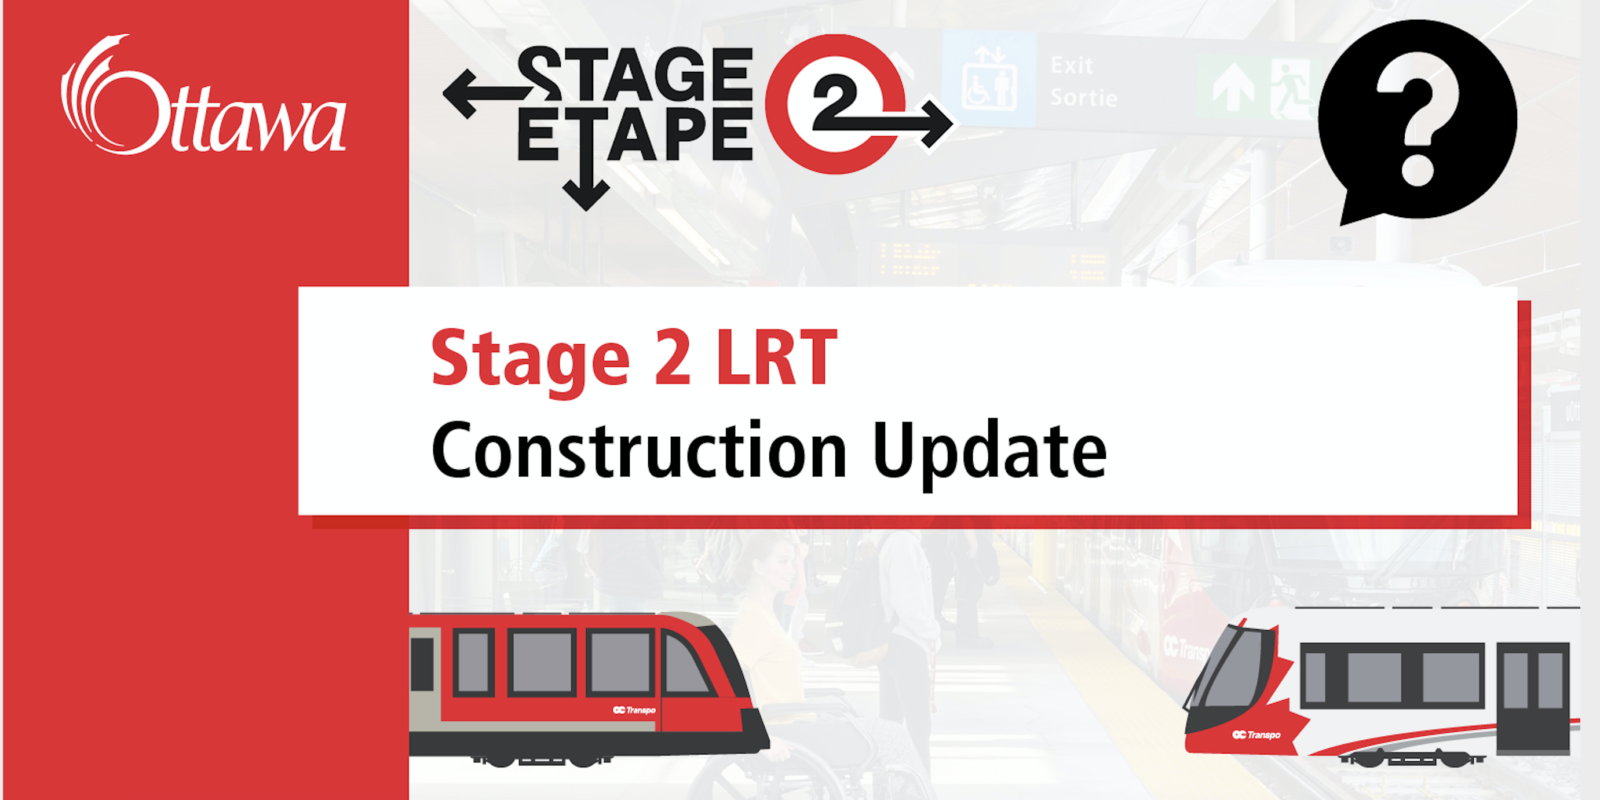 Public Meeting: Stage 2 LRT Construction Update